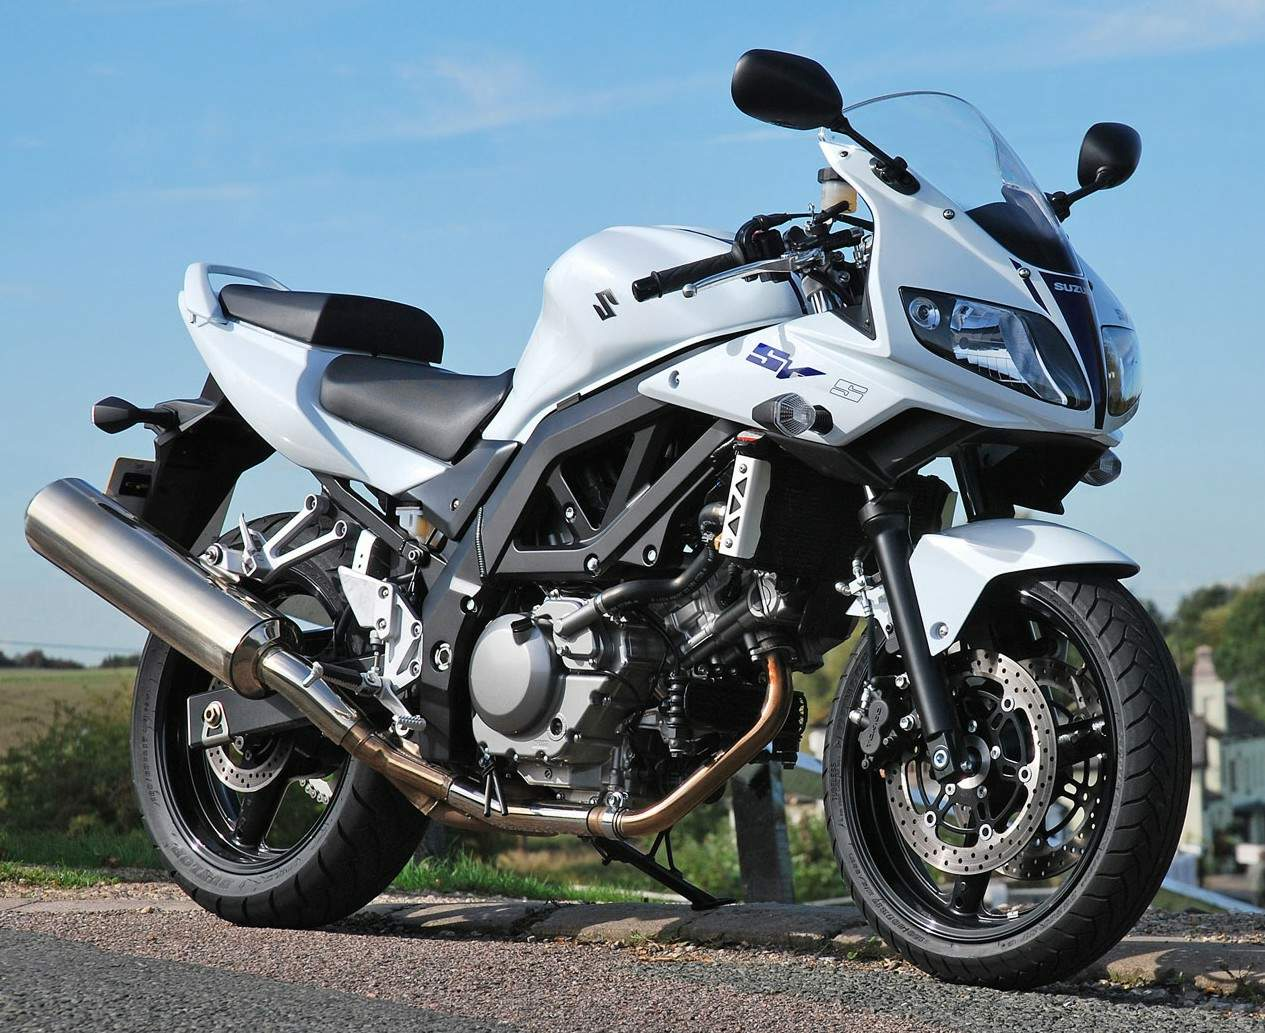 2011 suzuki sv 650 s abs pics specs and information. Black Bedroom Furniture Sets. Home Design Ideas